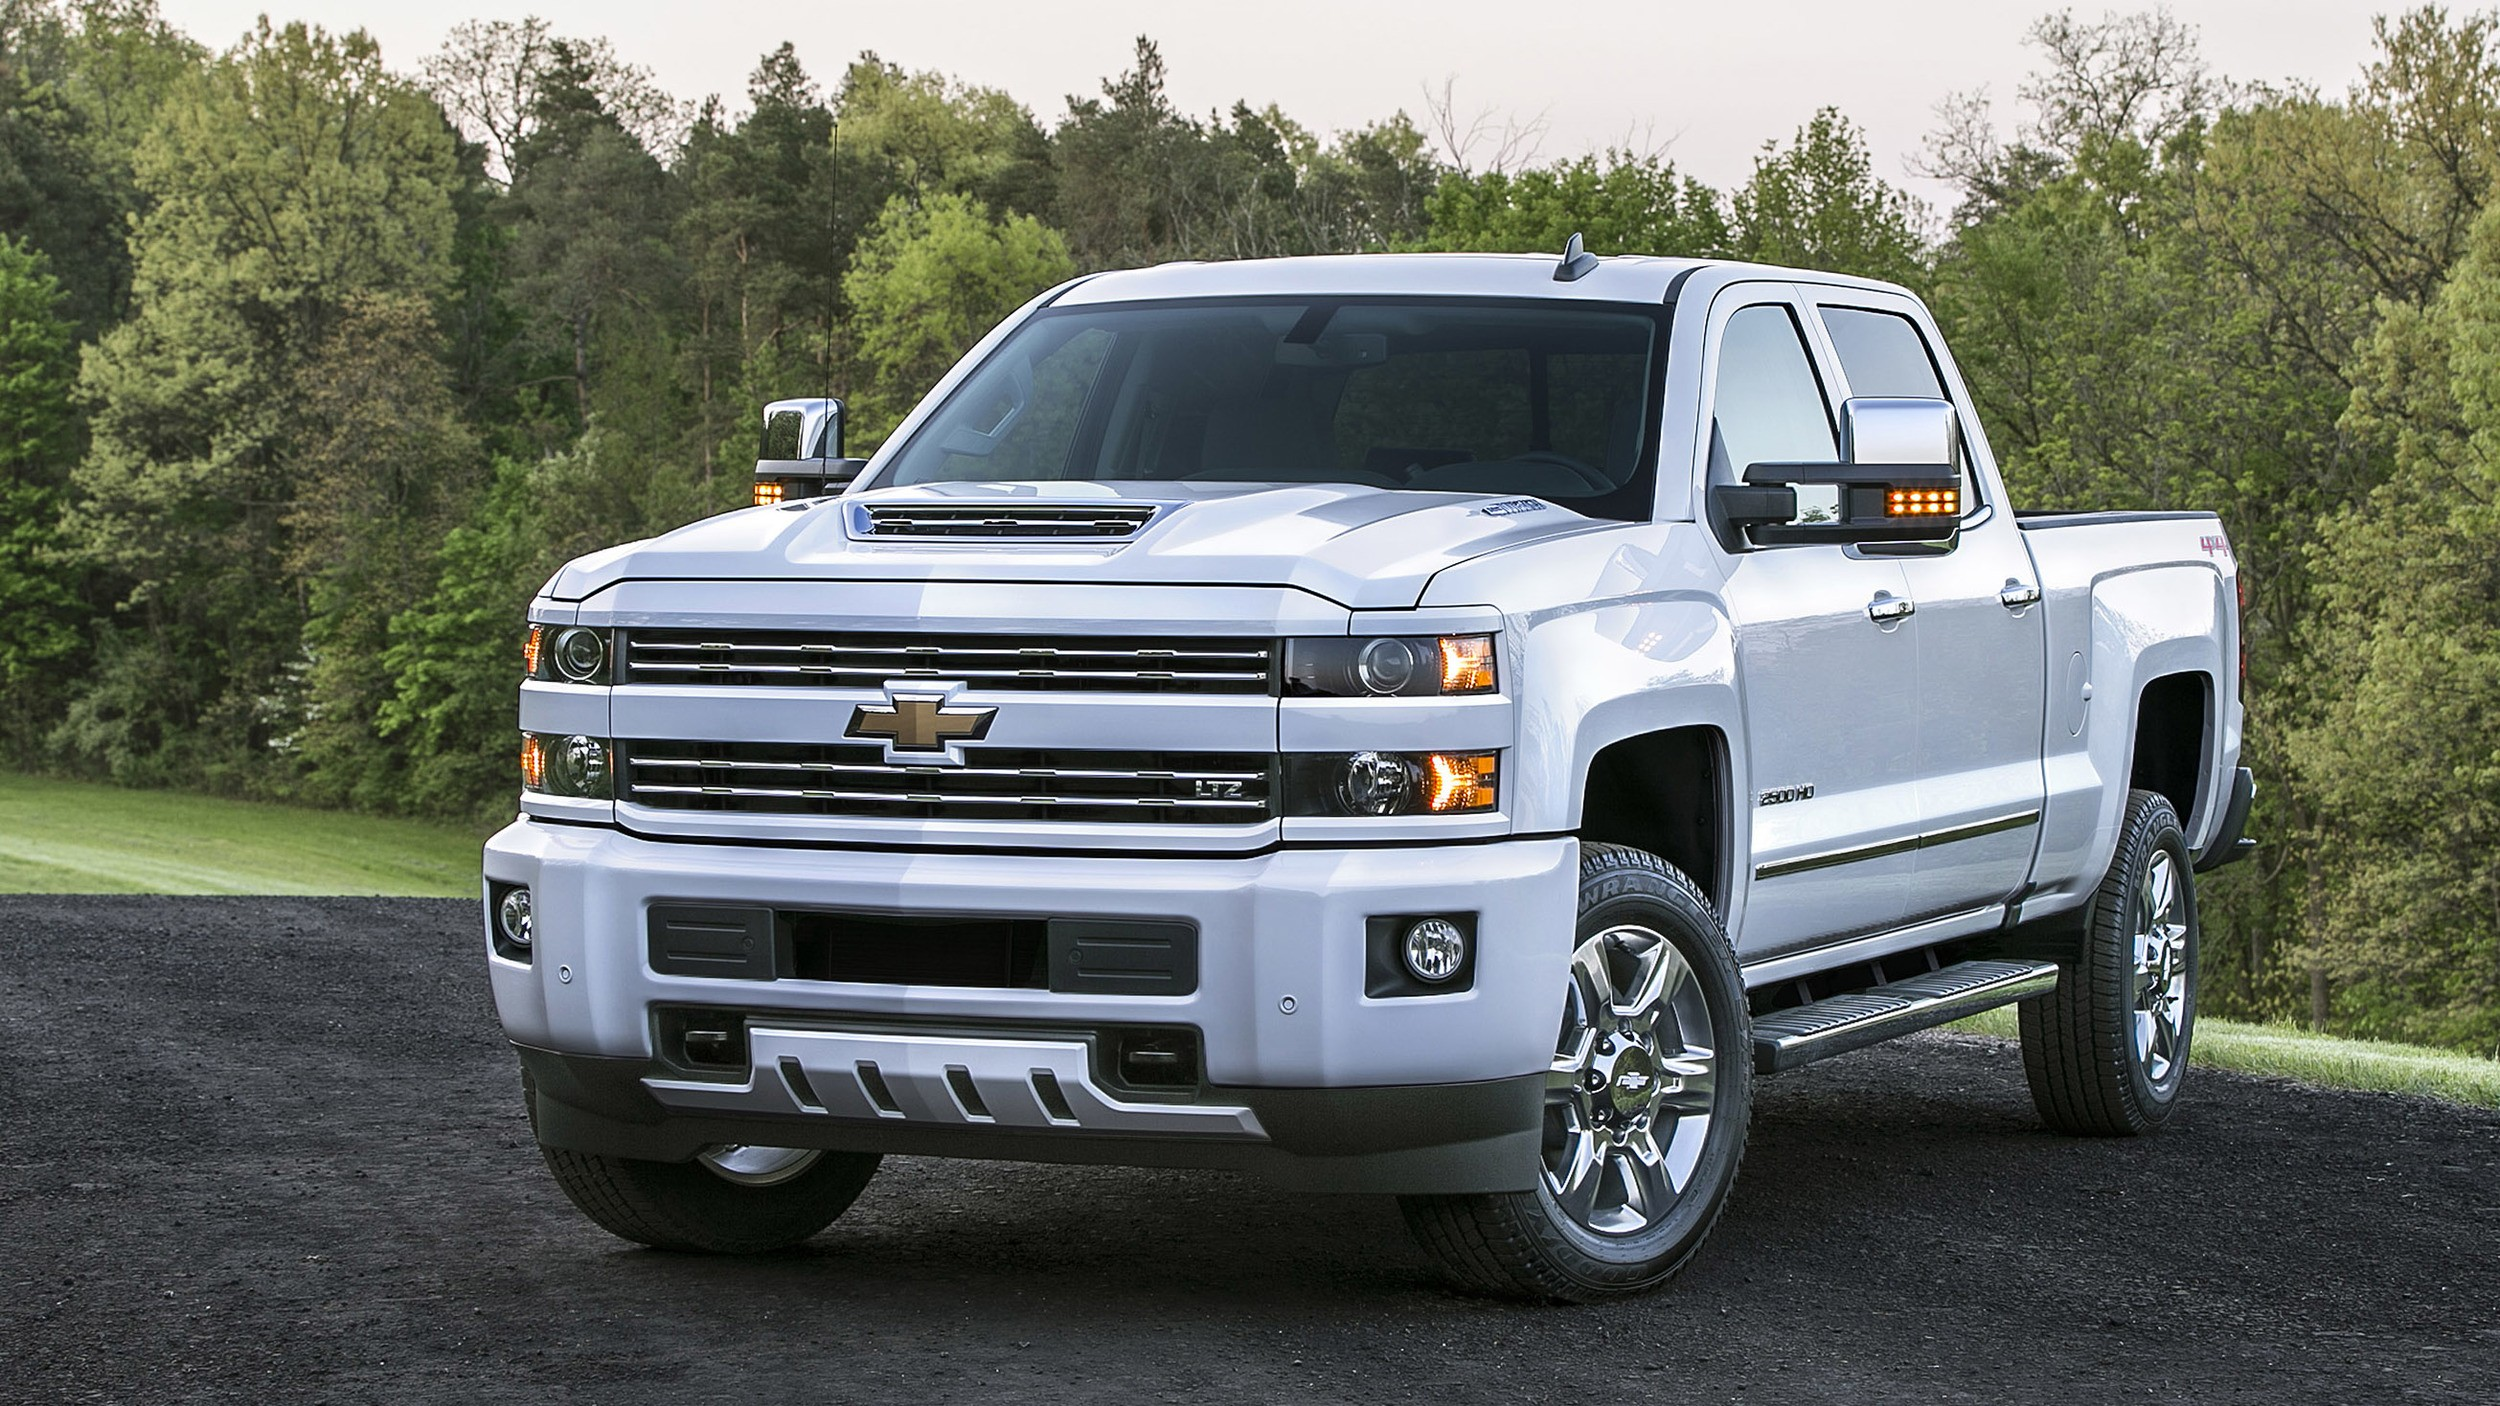 L5p Duramax Diesel Output Leaked 445 Horsepower 910 Lb Ft Of 2007 Fuel Filter Housing Specifications 2017 Chevrolet Silverado 2500 Hd